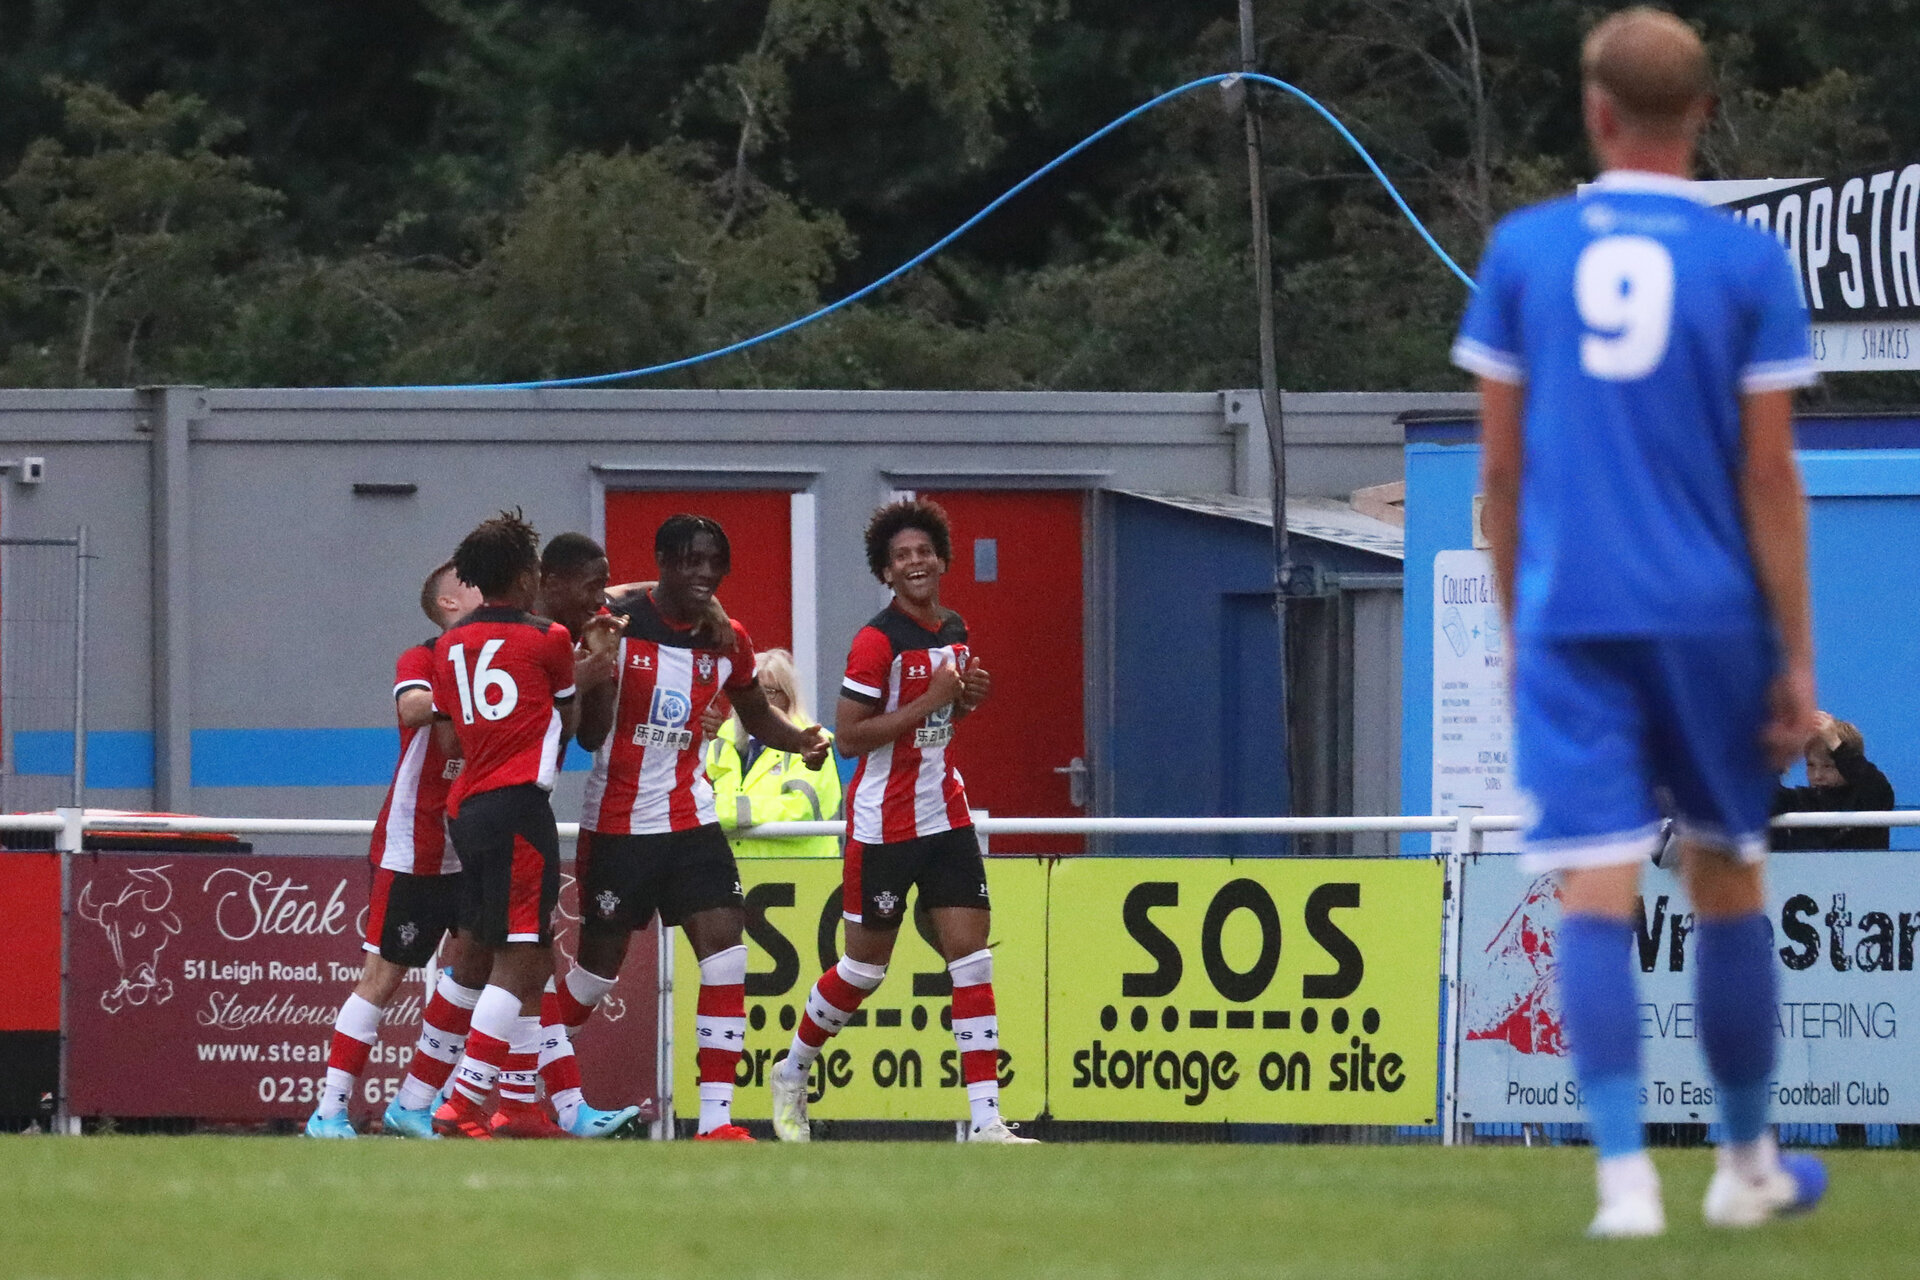 EASTLEIGH, ENGLAND, JULY 30: Southampton players celebrate after Dan N'lundulu of Southampton FC scores his side's first goal during the pre-season friendly match between Eastleigh FC and Southampton U23s at Silverlake Stadium, Eastleigh, on Tuesday 30th July, 2019